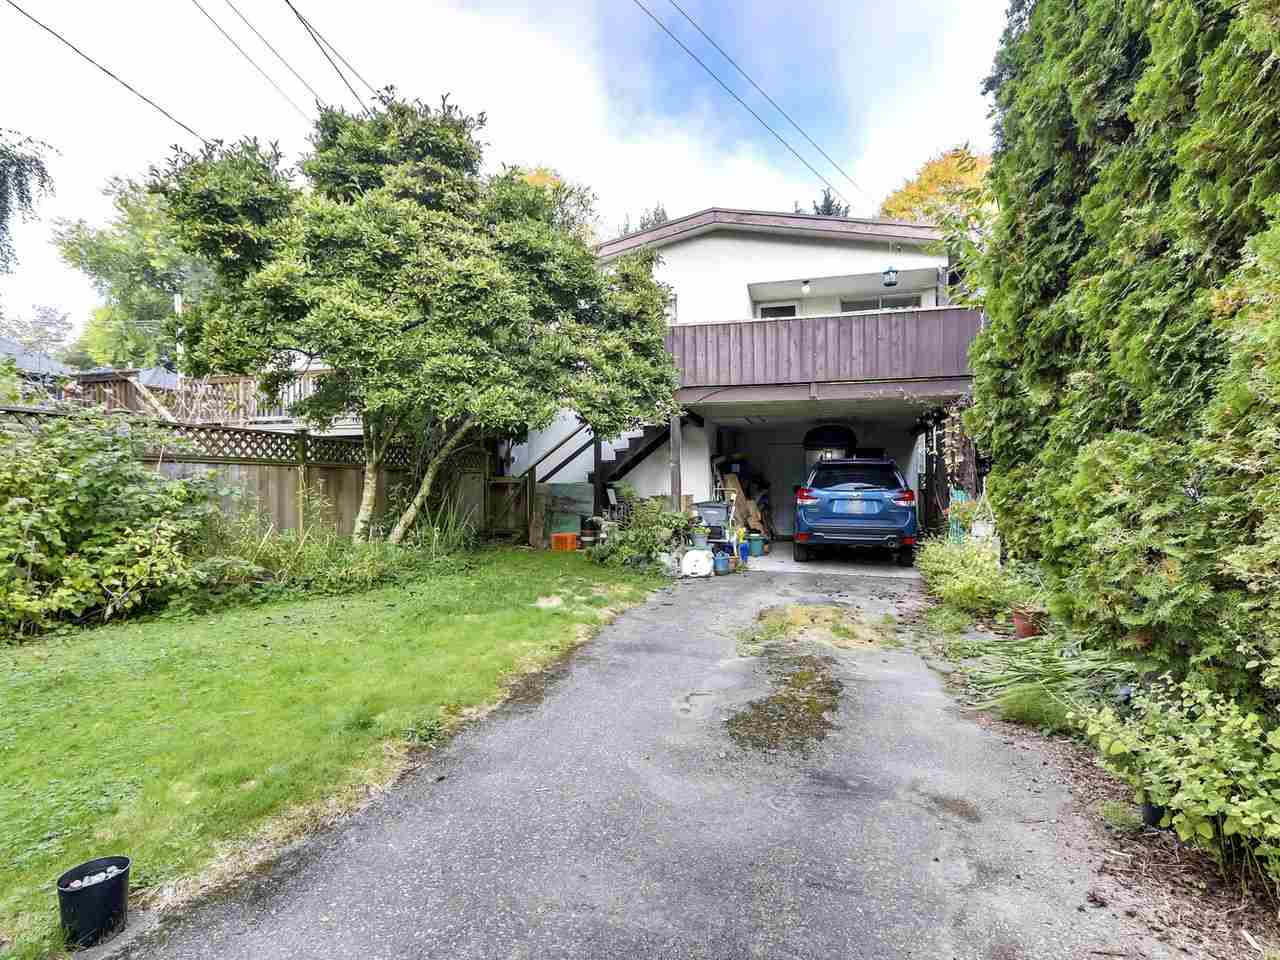 4372 W 13TH AVENUE - Point Grey House/Single Family for sale, 4 Bedrooms (R2508858) - #10